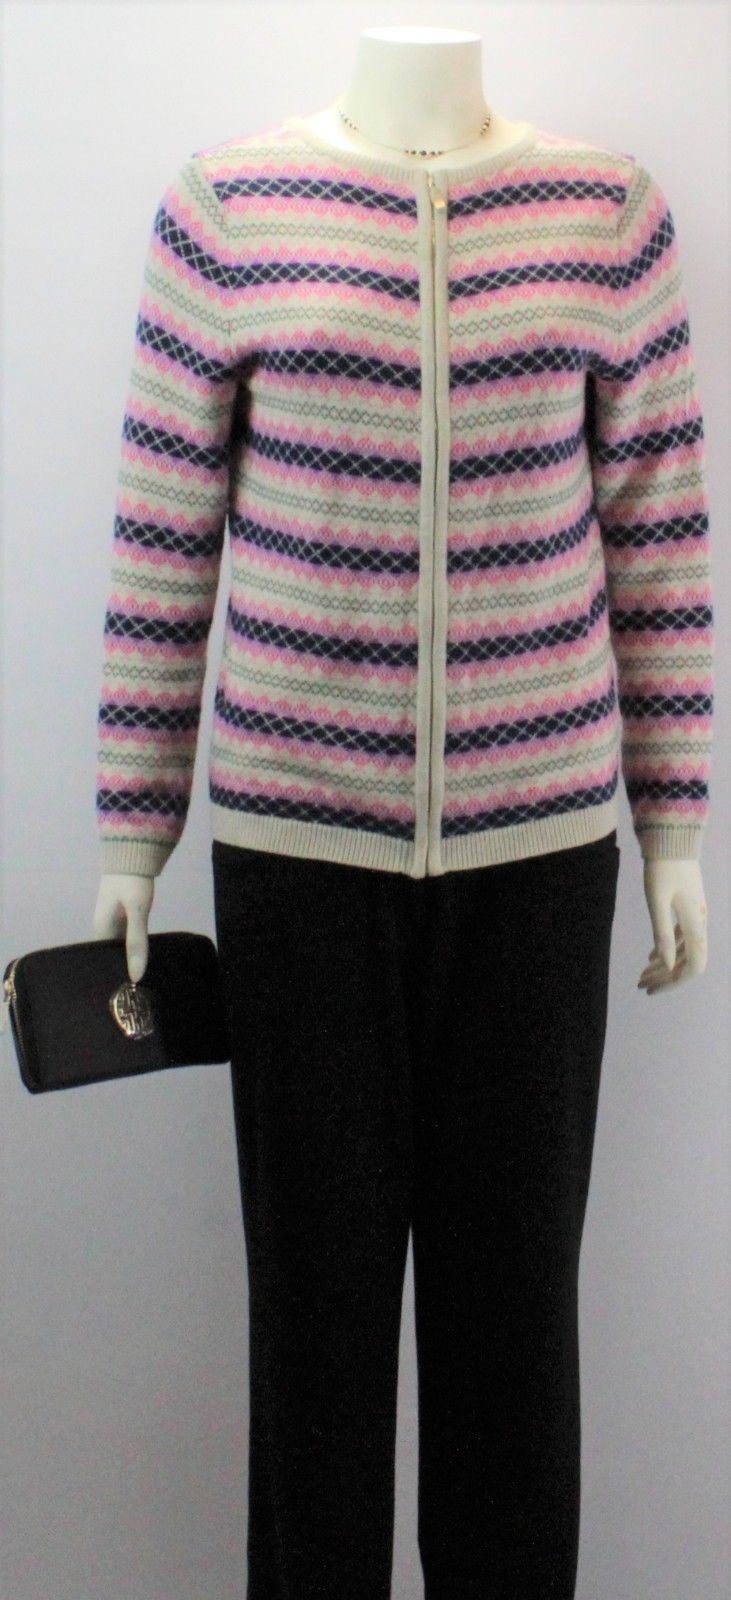 Primary image for Talbots Women's Multicolor Crew Neck Long Sleeve Full Zip Sweater